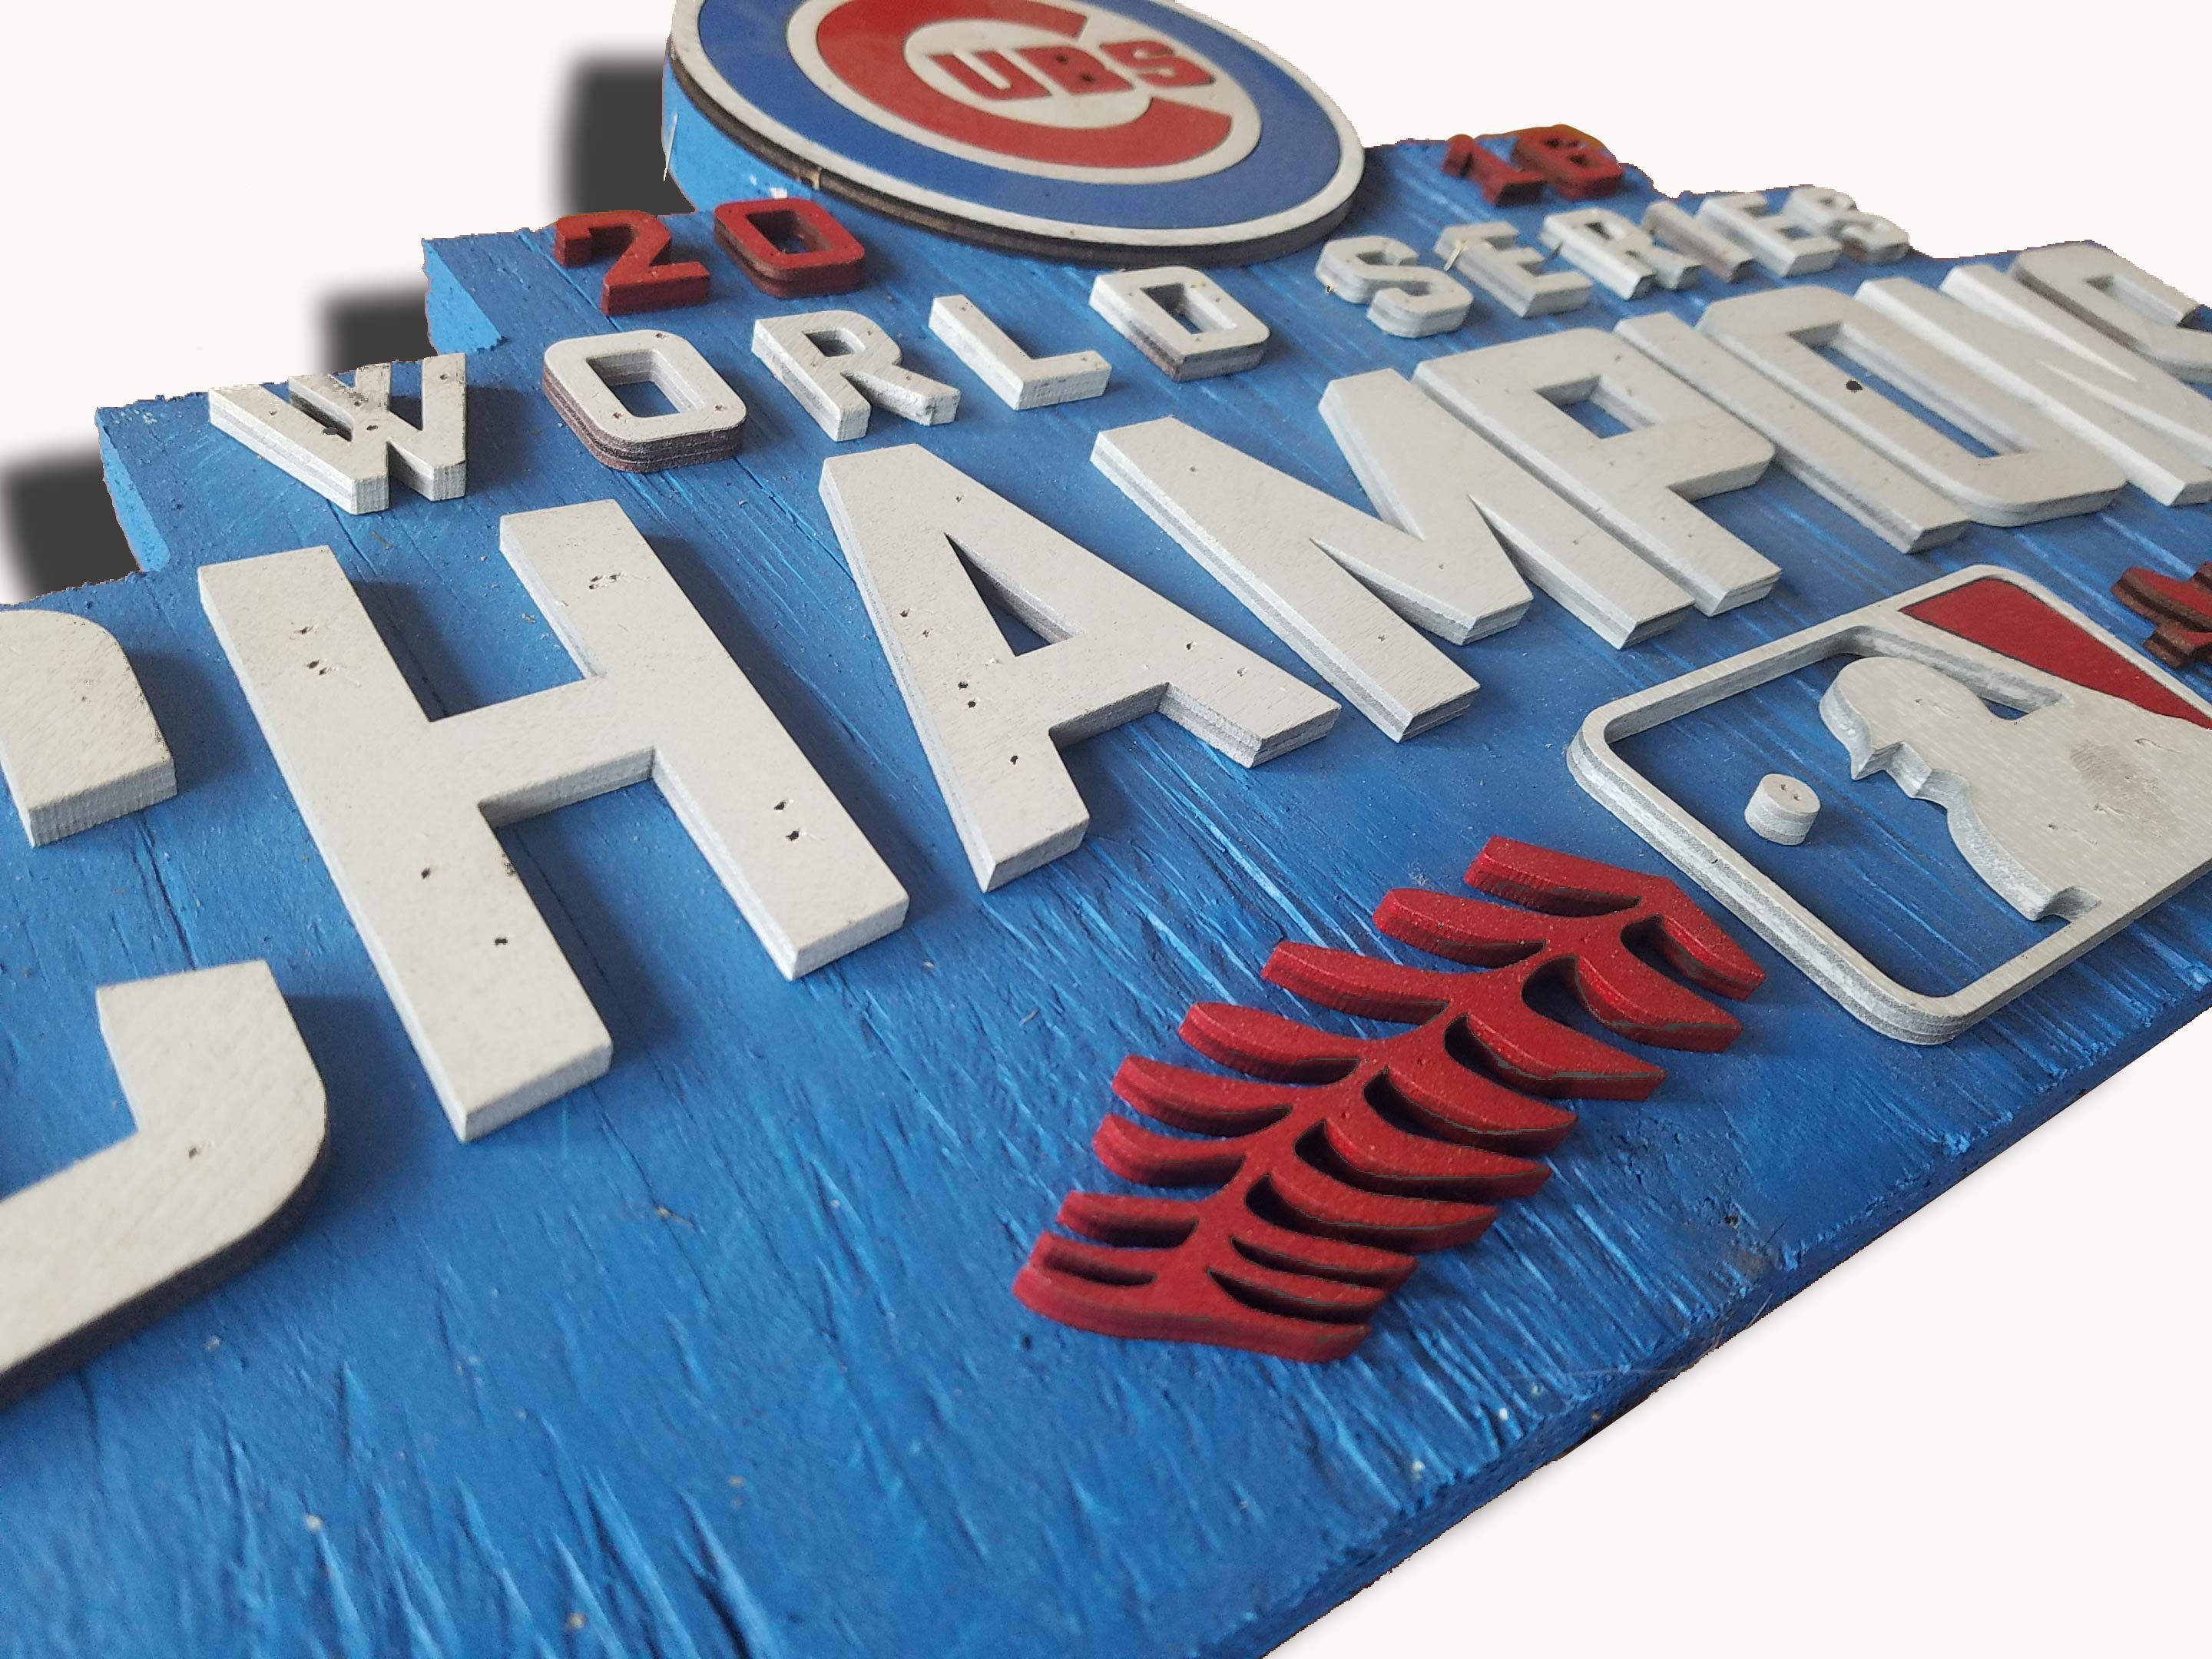 World Series Champions Chicago Cubs Handmade Distressed Wood Sign Vintage Art Weathered Recycled Baseball Home Decor Man Cave Blue